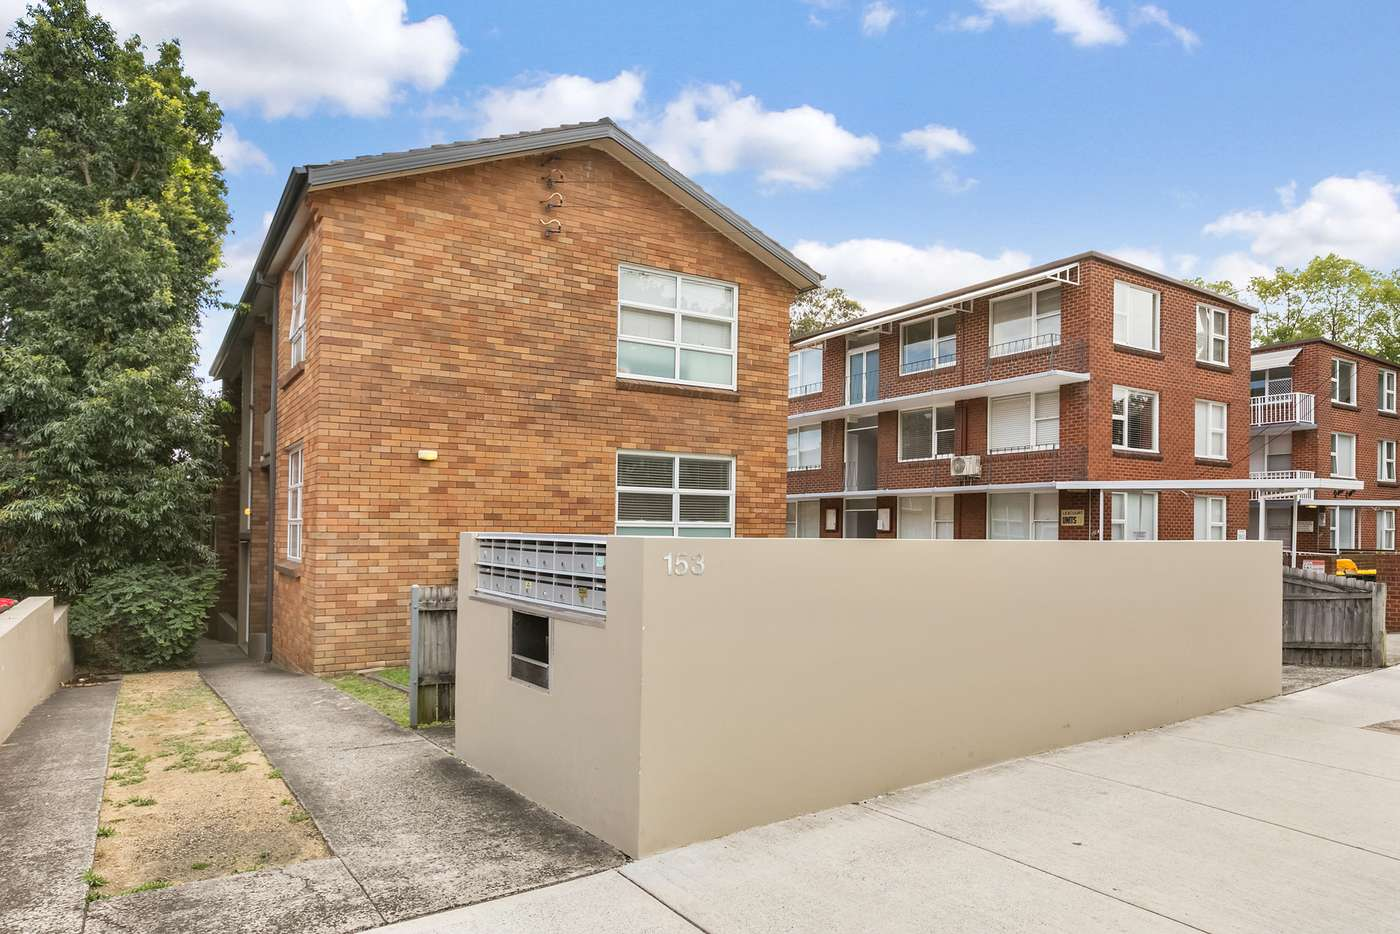 Main view of Homely apartment listing, 13/153 Smith Street, Summer Hill NSW 2130